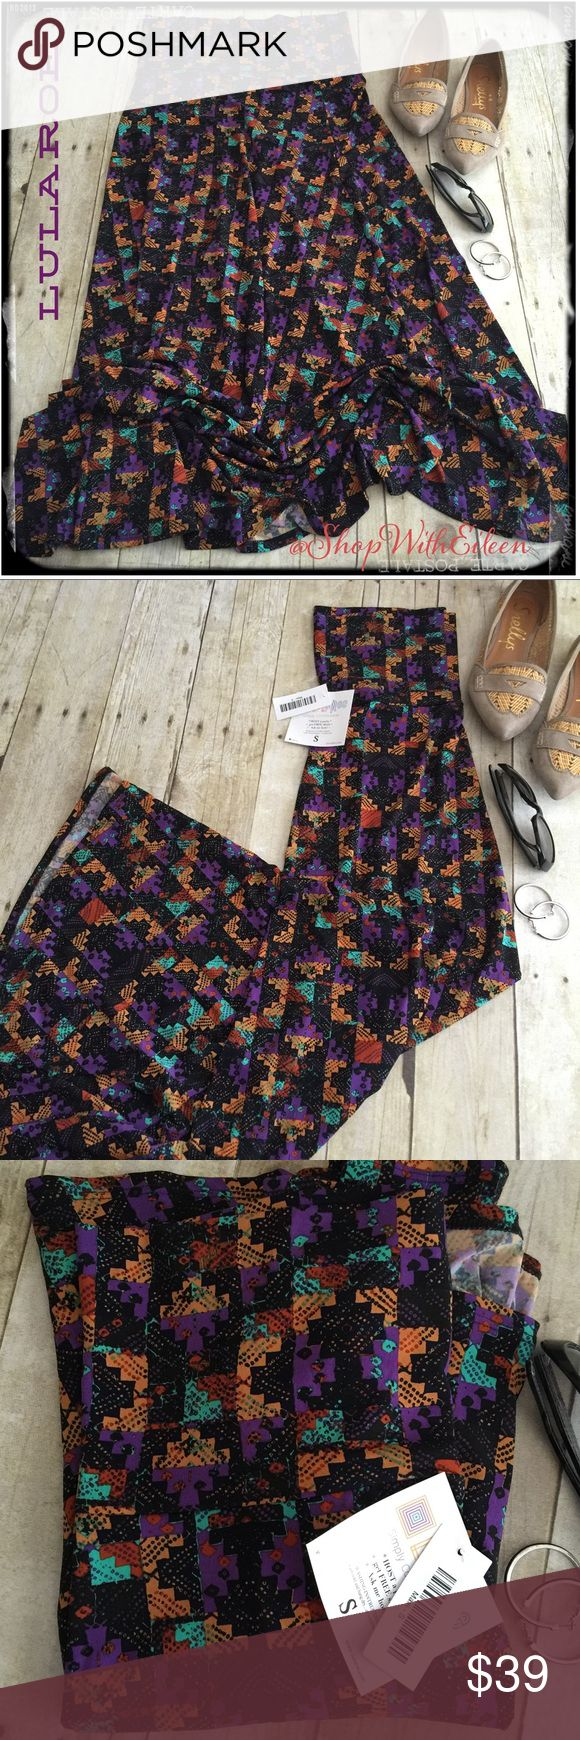 🆕 Lularoe PUZZLE AZTEC PRINT MAXI skirt! 🆕Lularoe PUZZLE AZTEC PRINT MAXI skirt! THE SKIRT THAT STARTED IT ALL! The Maxi skirt is a go-to piece for the woman who wants to be comfortable throughout the day but still likes to look her best. It's perfect for the woman whose demanding day requires function and style from her wardrobe. The LuLaRoe Maxi Skirt can easily be worn while playing on the ground with kids and transitions effortlessly to a night on the town! It can be worn MANY ways…